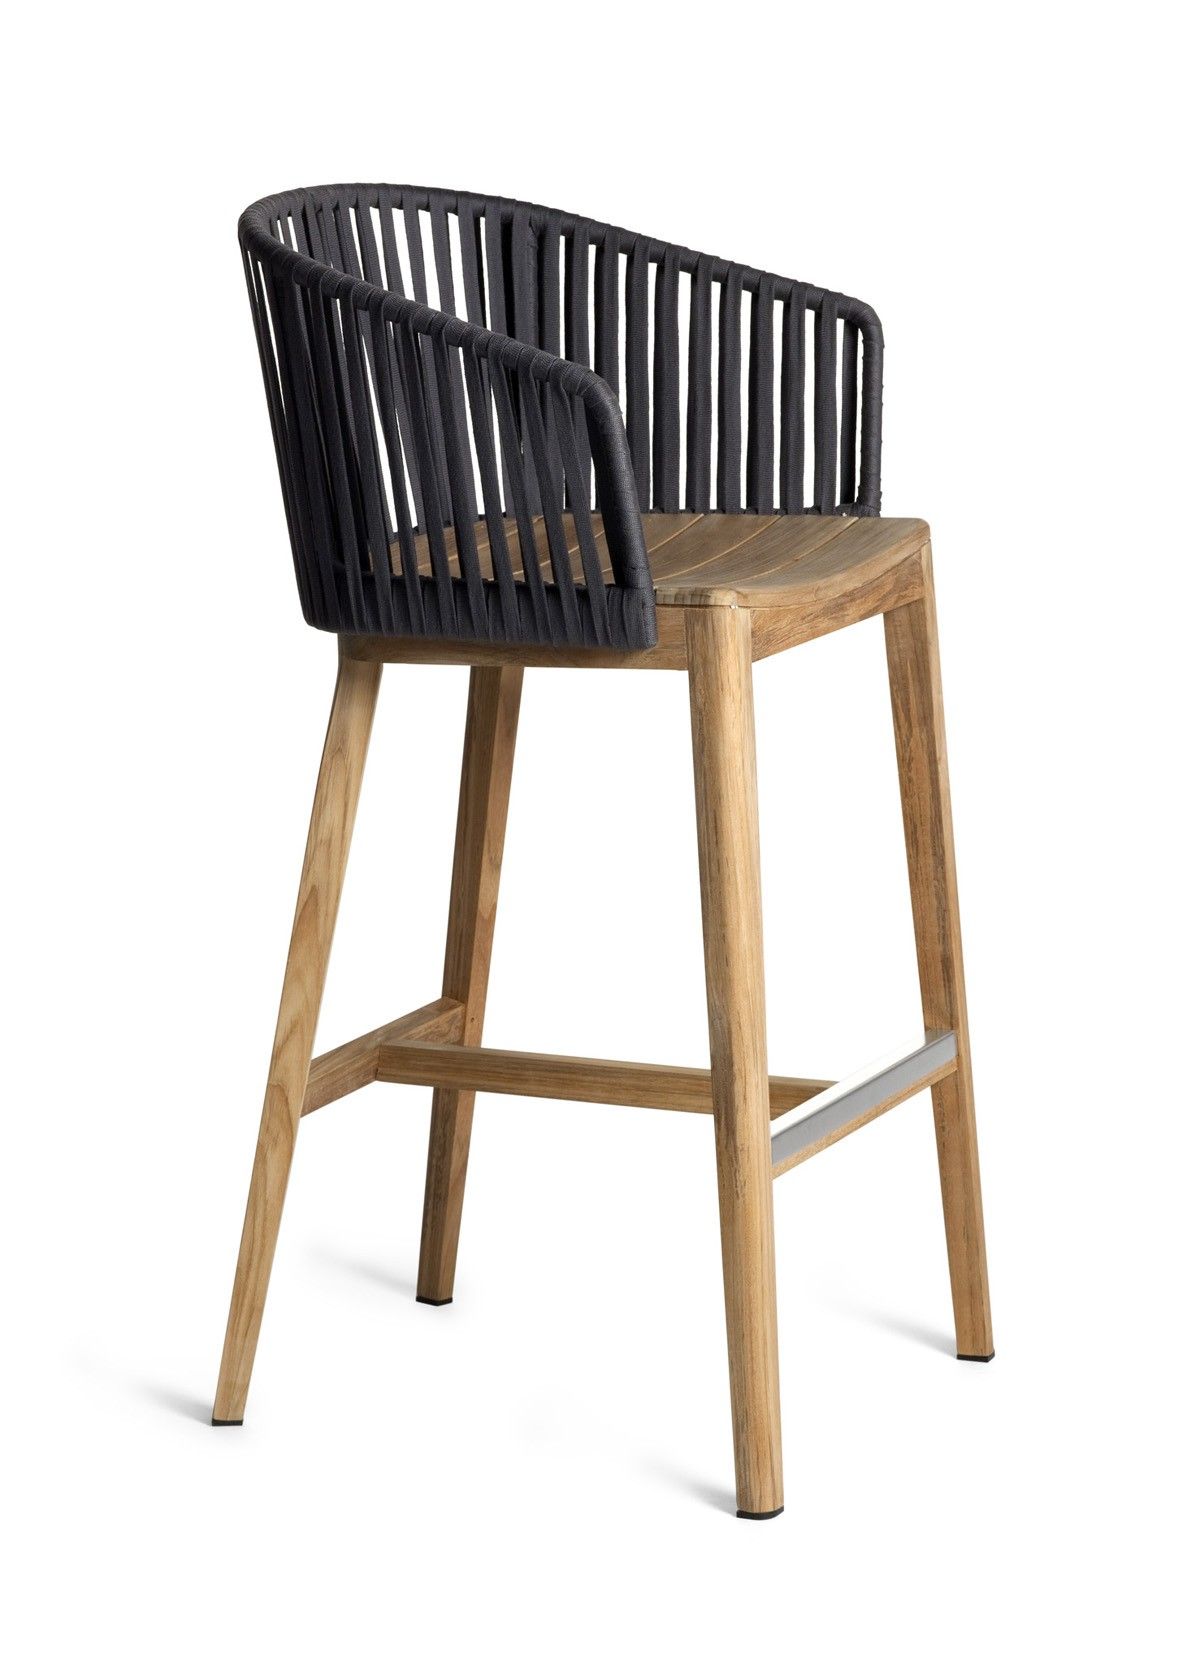 Tabouret de bar mood de trib for Tabouret de bar exterieur ikea